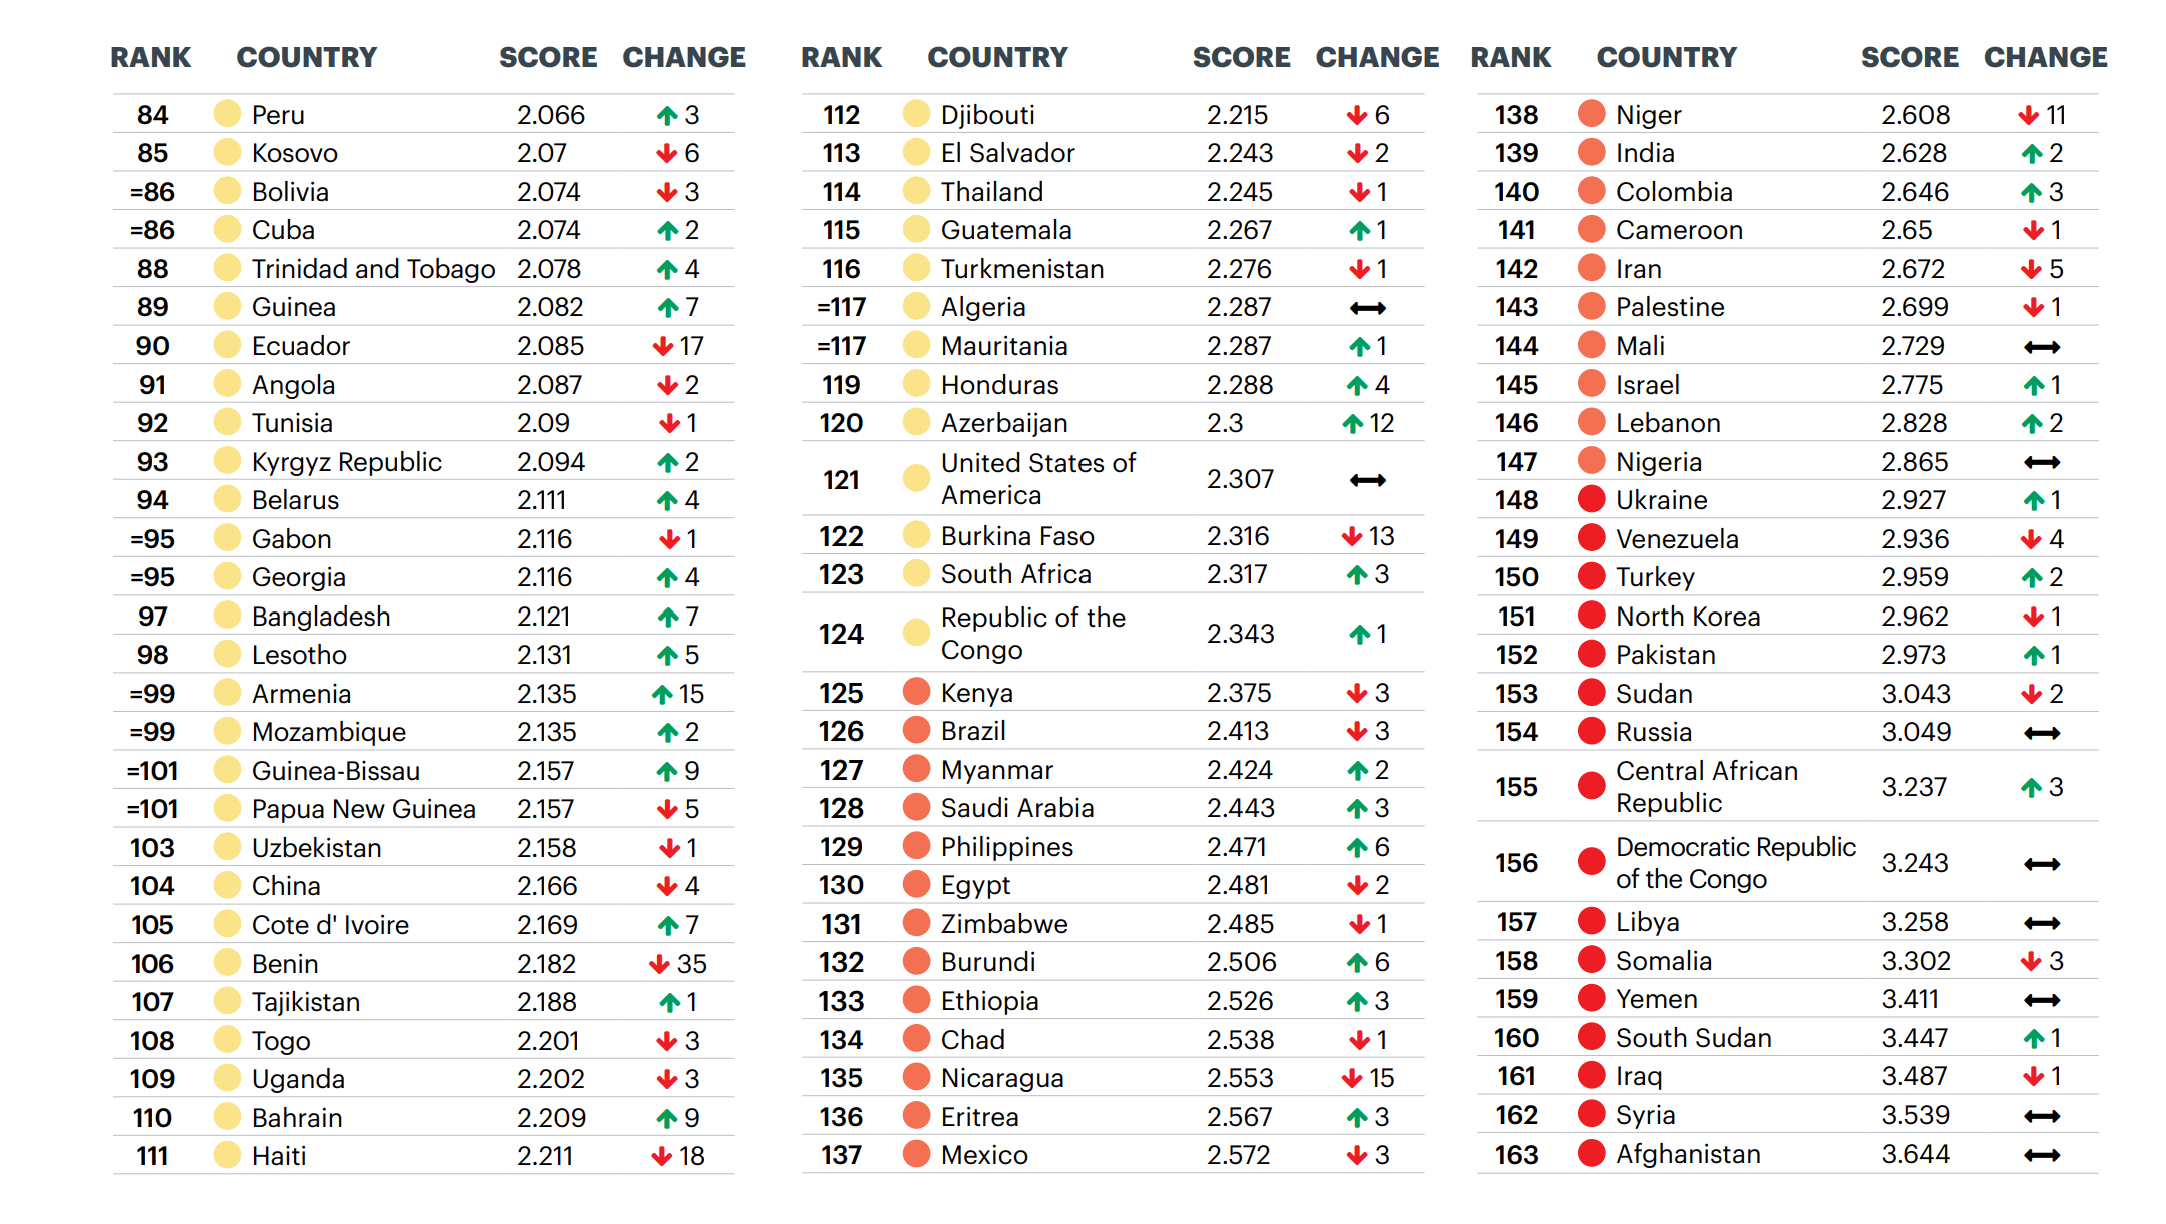 Wereldwijde GPI (Global Peace Index) Scores | Deel 2, 2020